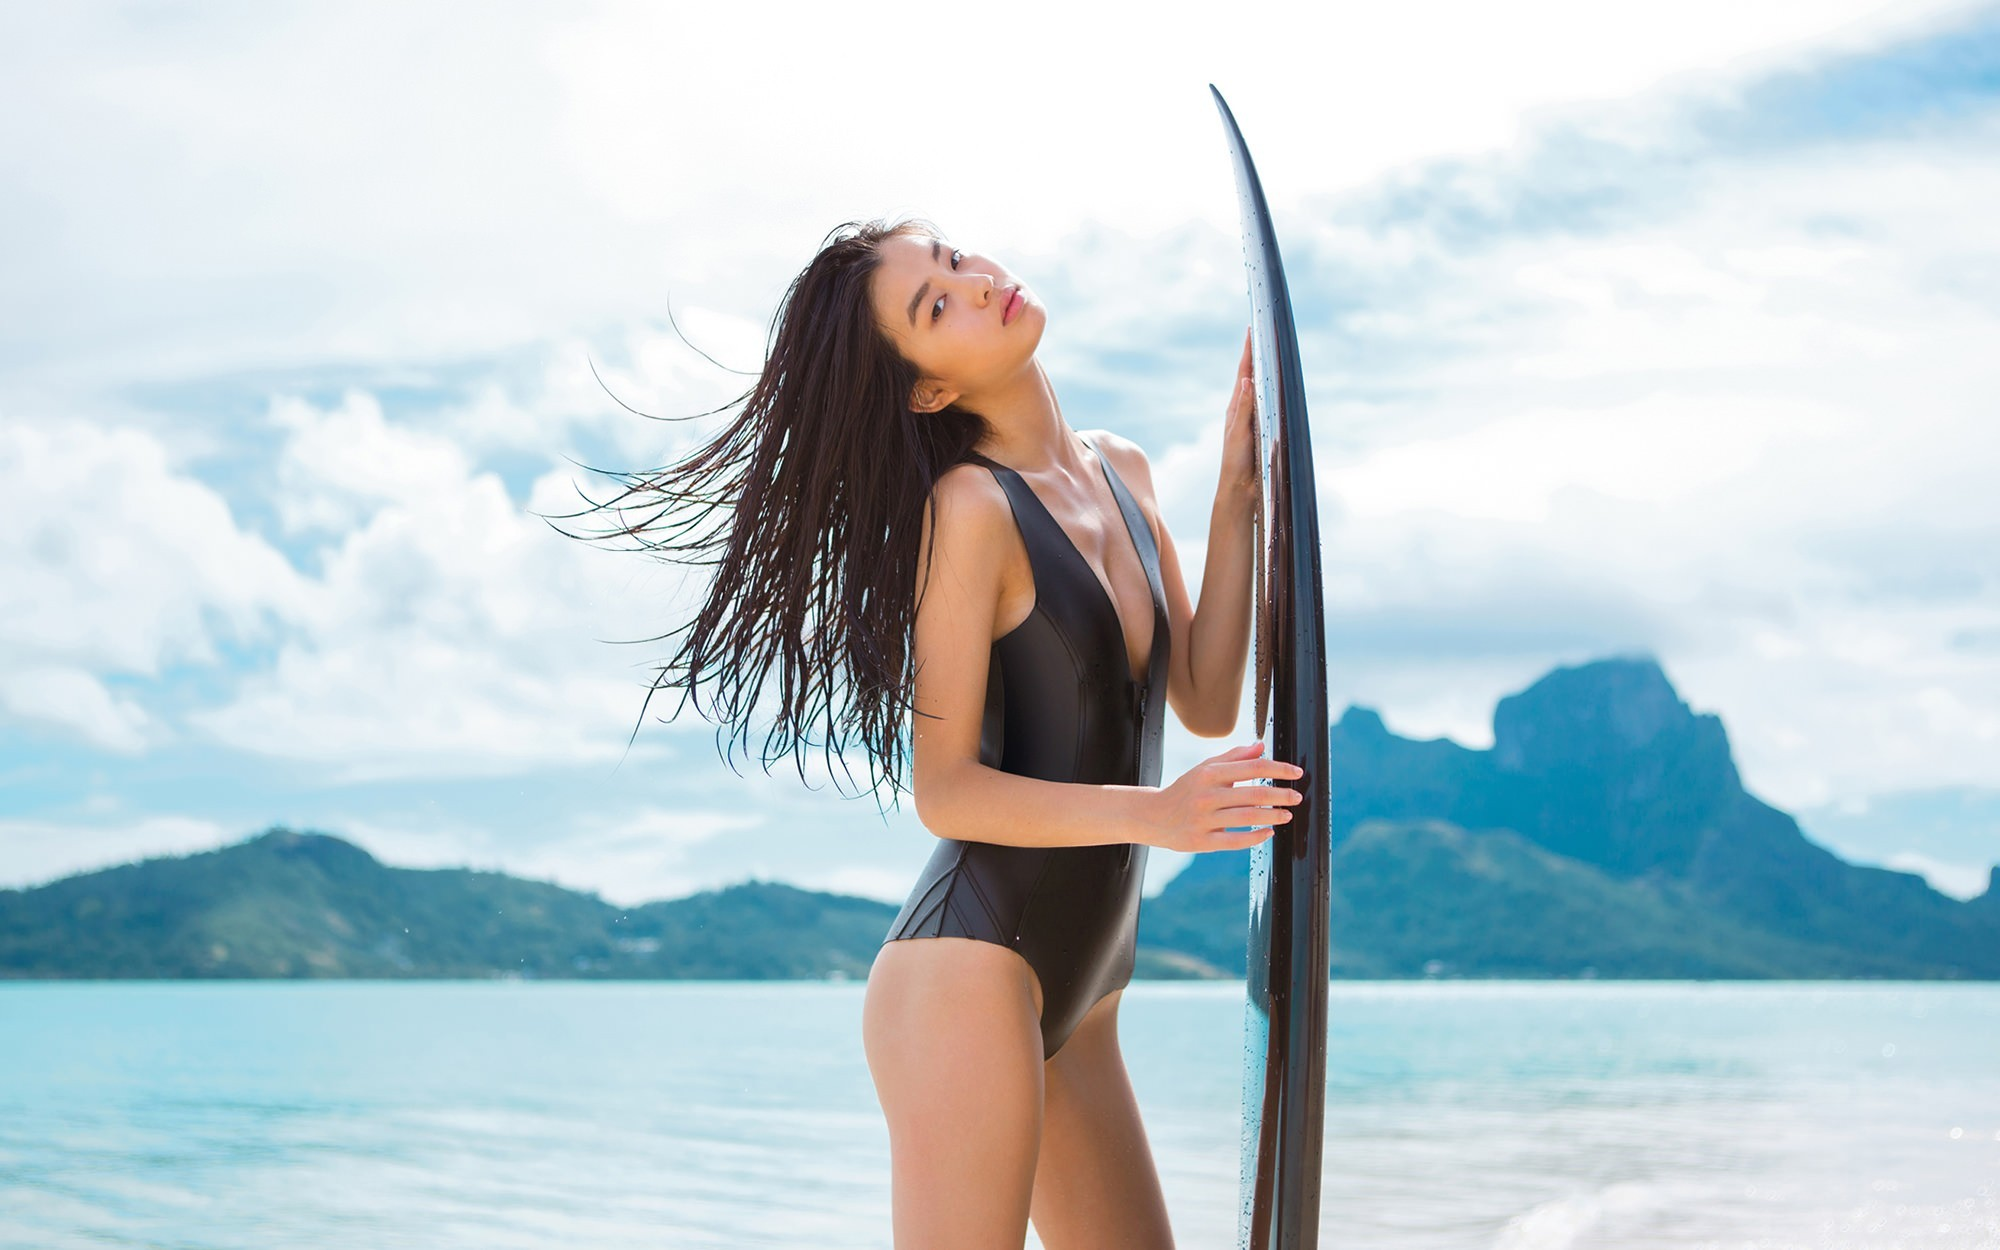 Res: 2000x1250, Beautiful Surfer Girl at Beach HD Images